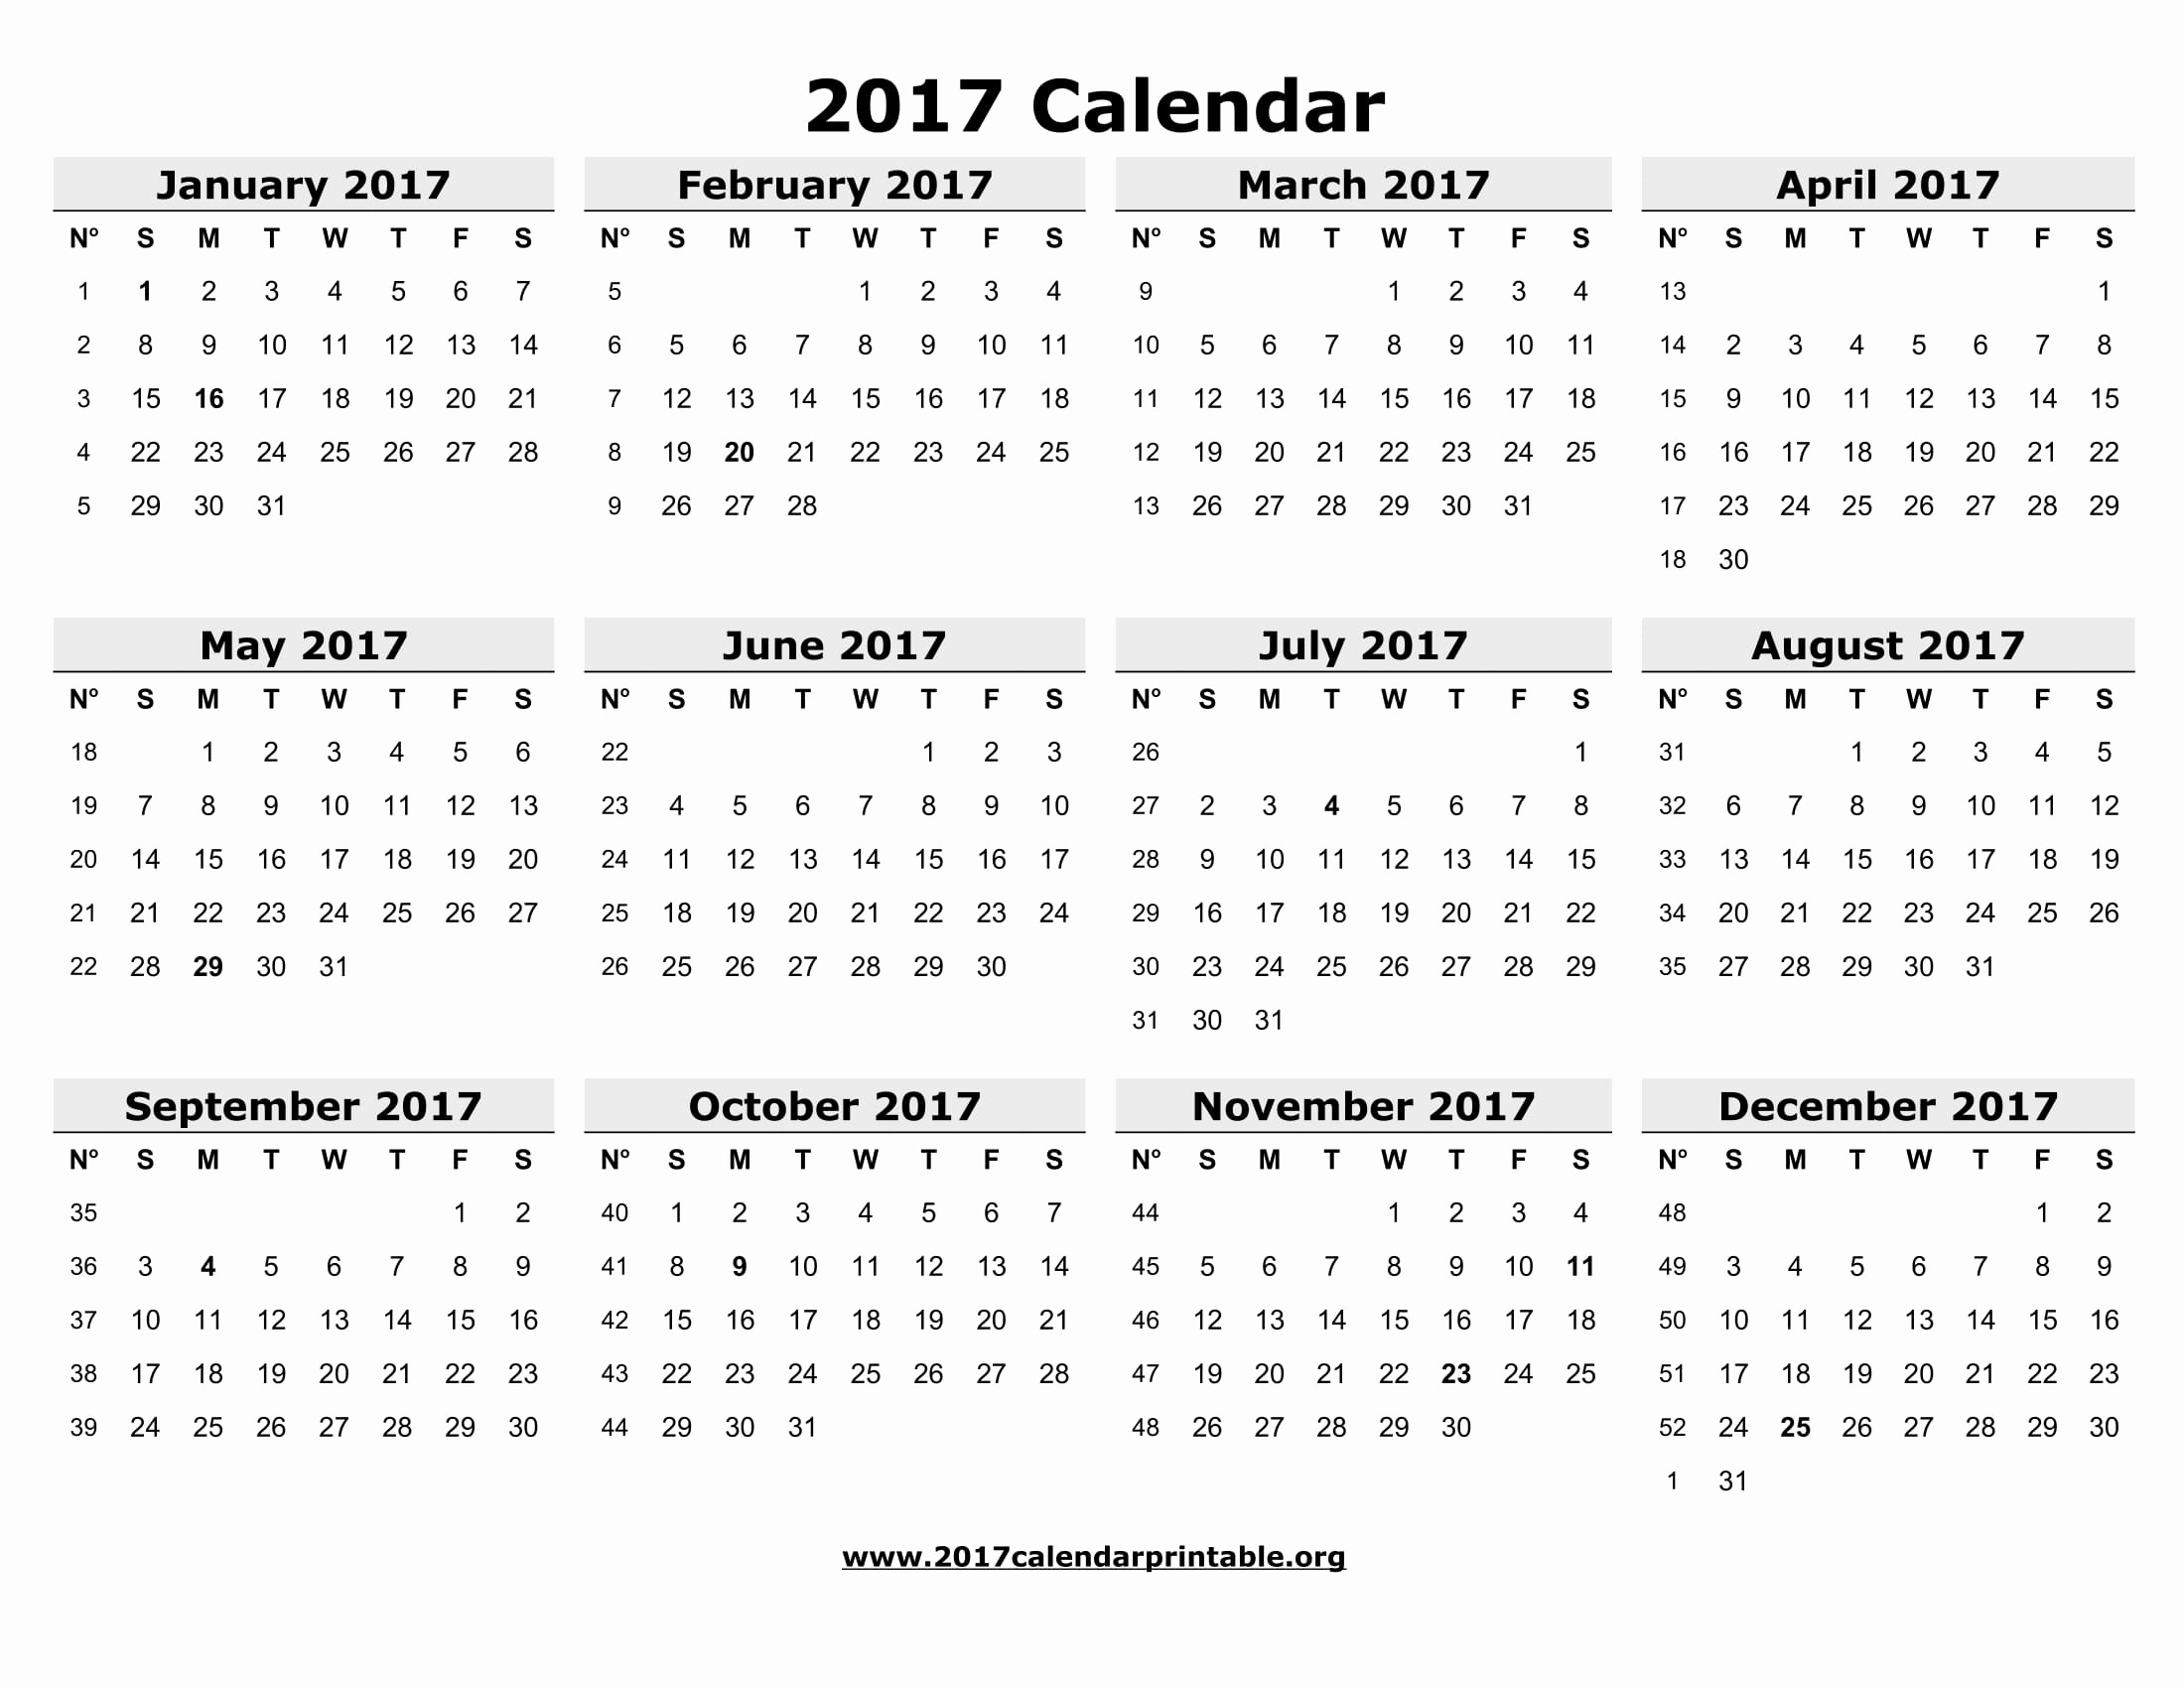 Printable 2017 Monthly Calendar Template Best Of 12 Month Calendar 2017 Printable with Notes